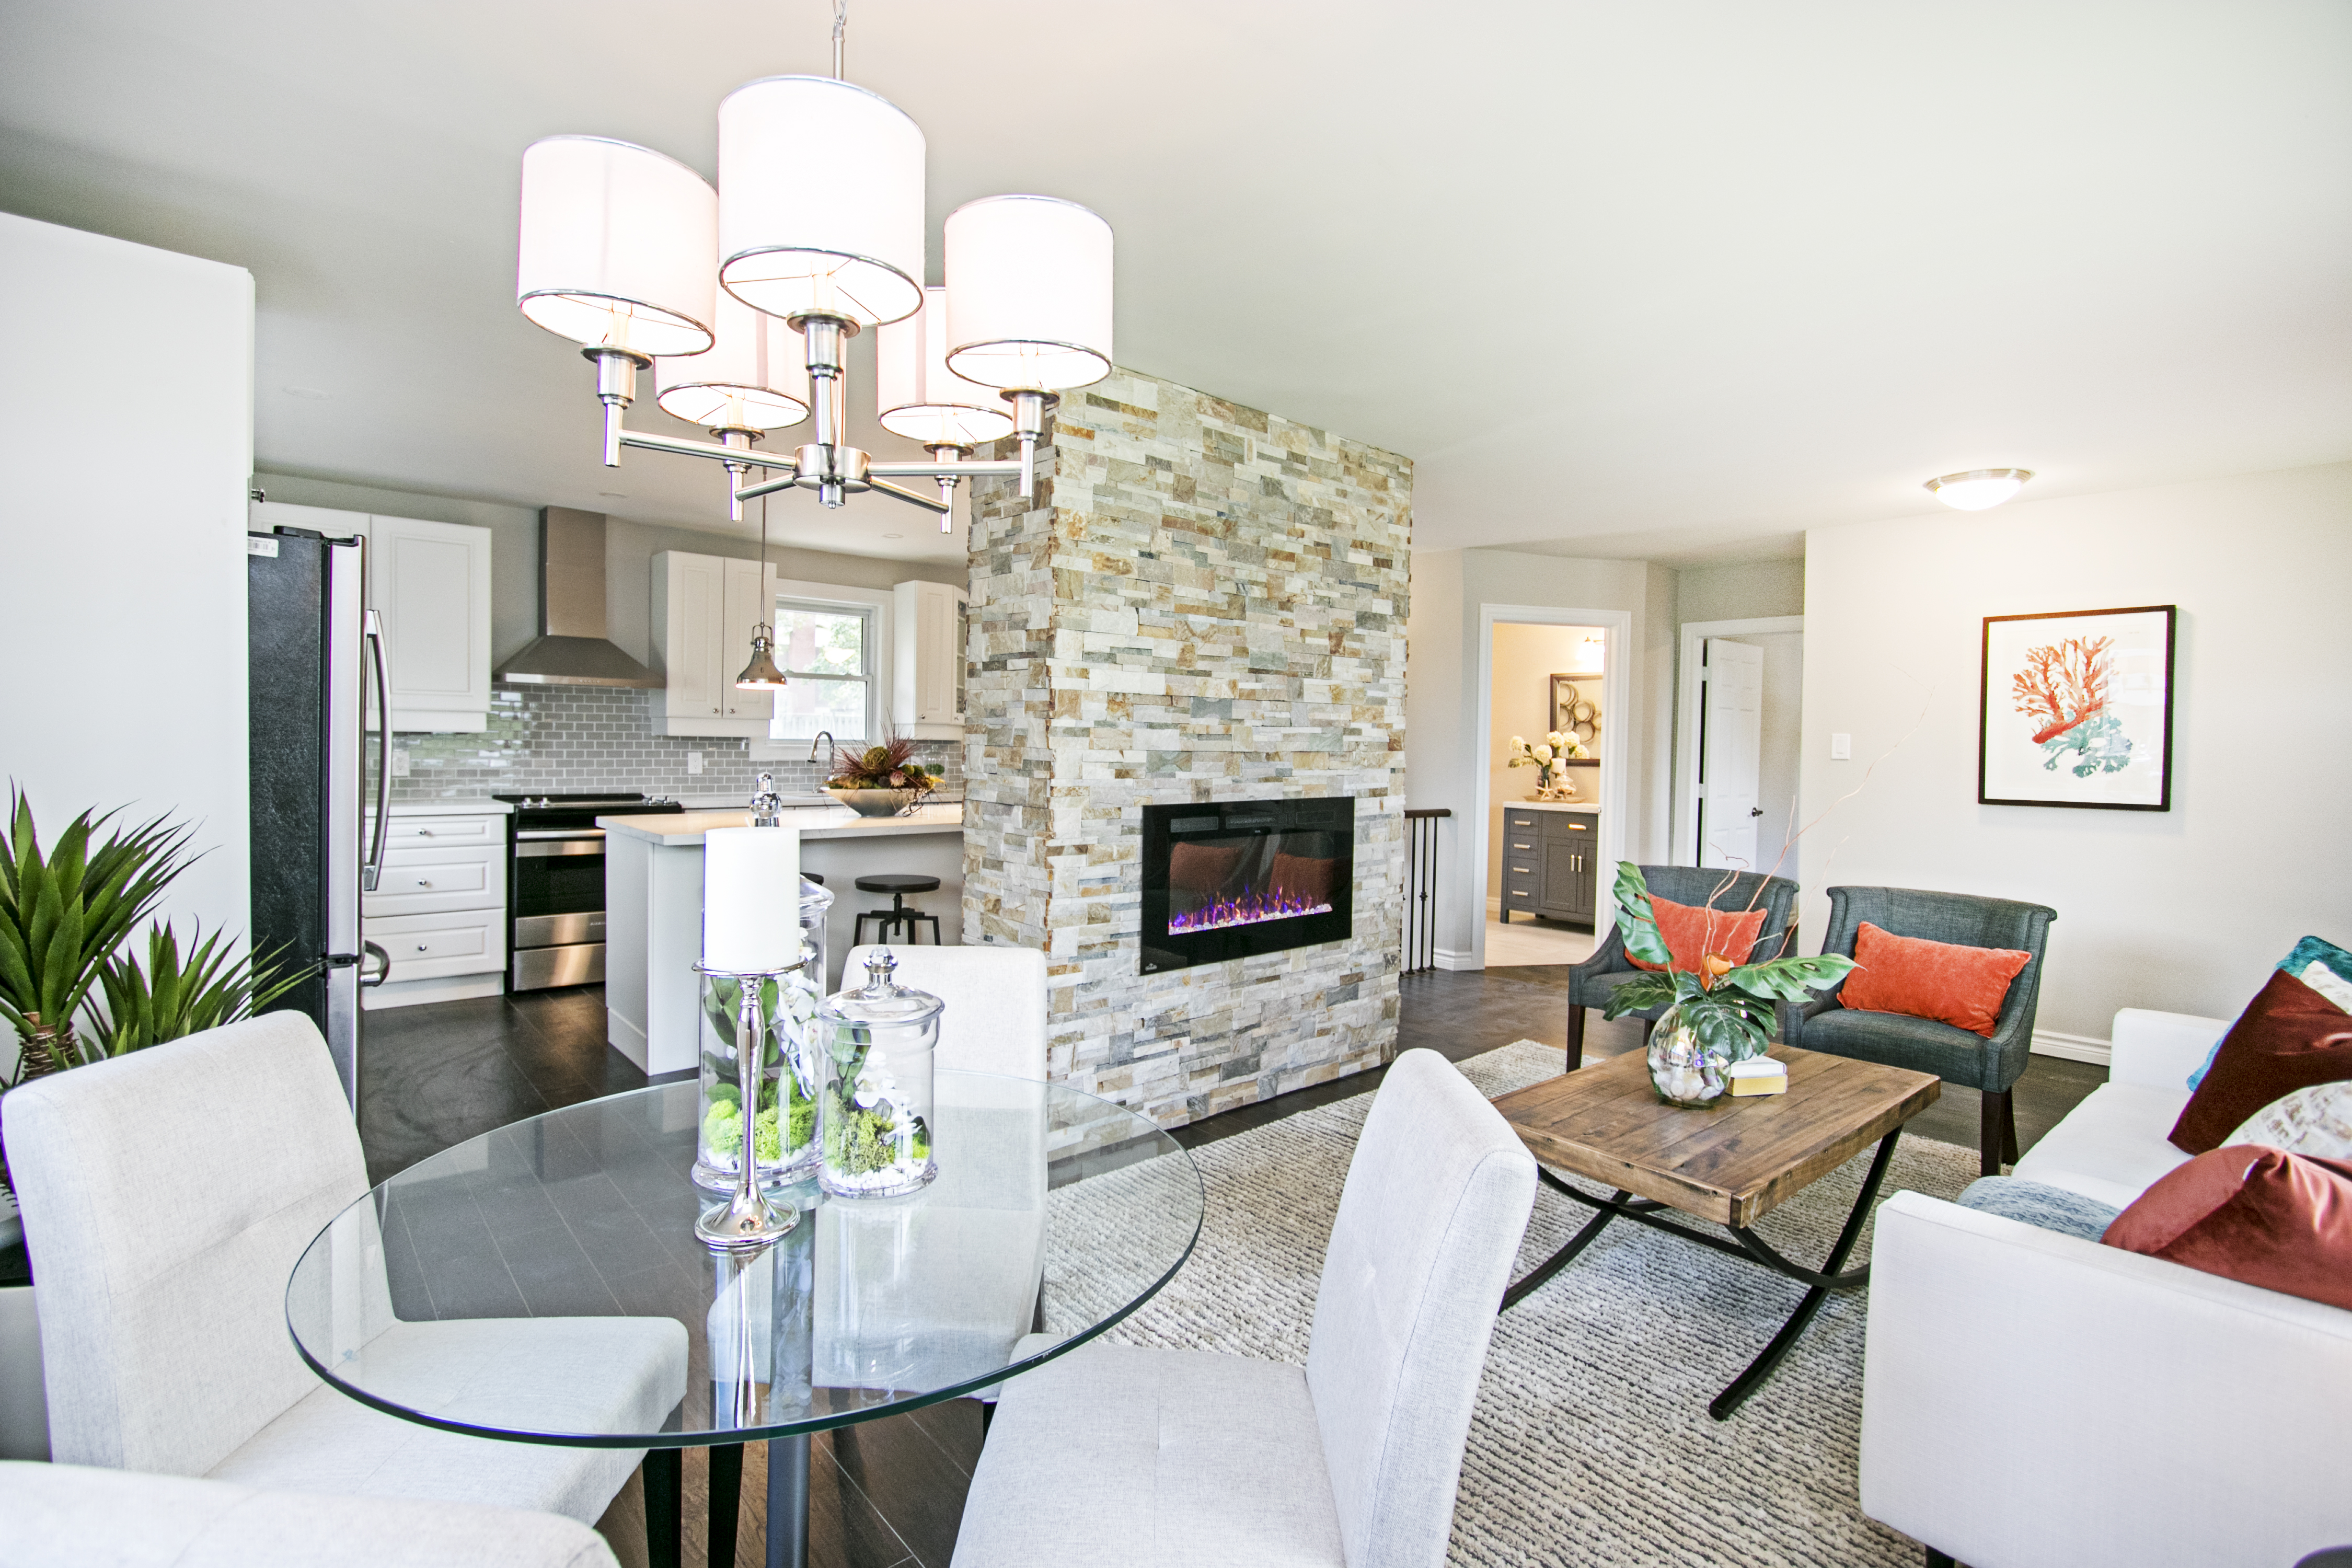 Home Staging Pictures In Courtice, Ajax, Whitby, Oshawa